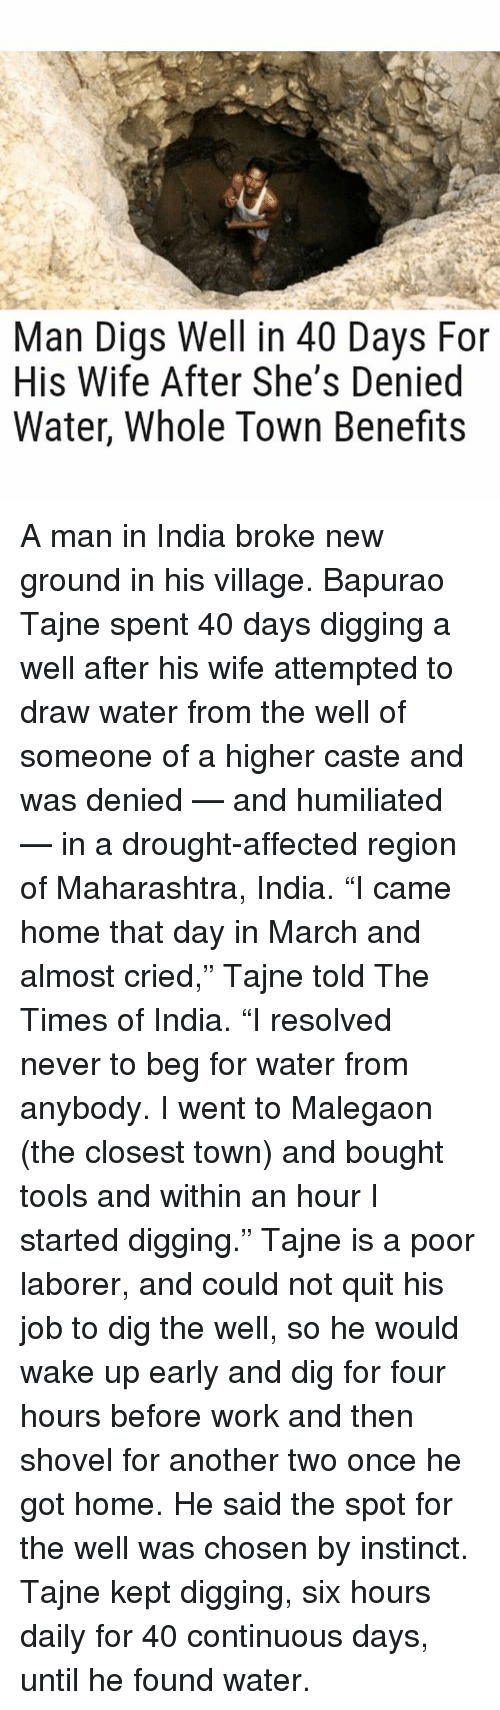 """Memes, Affect, and India: Man Digs Well in 40 Days For  His Wife After She's Denied  Water, Whole Town Benefits A man in India broke new ground in his village. Bapurao Tajne spent 40 days digging a well after his wife attempted to draw water from the well of someone of a higher caste and was denied — and humiliated — in a drought-affected region of Maharashtra, India. """"I came home that day in March and almost cried,"""" Tajne told The Times of India. """"I resolved never to beg for water from anybody. I went to Malegaon (the closest town) and bought tools and within an hour I started digging."""" Tajne is a poor laborer, and could not quit his job to dig the well, so he would wake up early and dig for four hours before work and then shovel for another two once he got home. He said the spot for the well was chosen by instinct. Tajne kept digging, six hours daily for 40 continuous days, until he found water."""